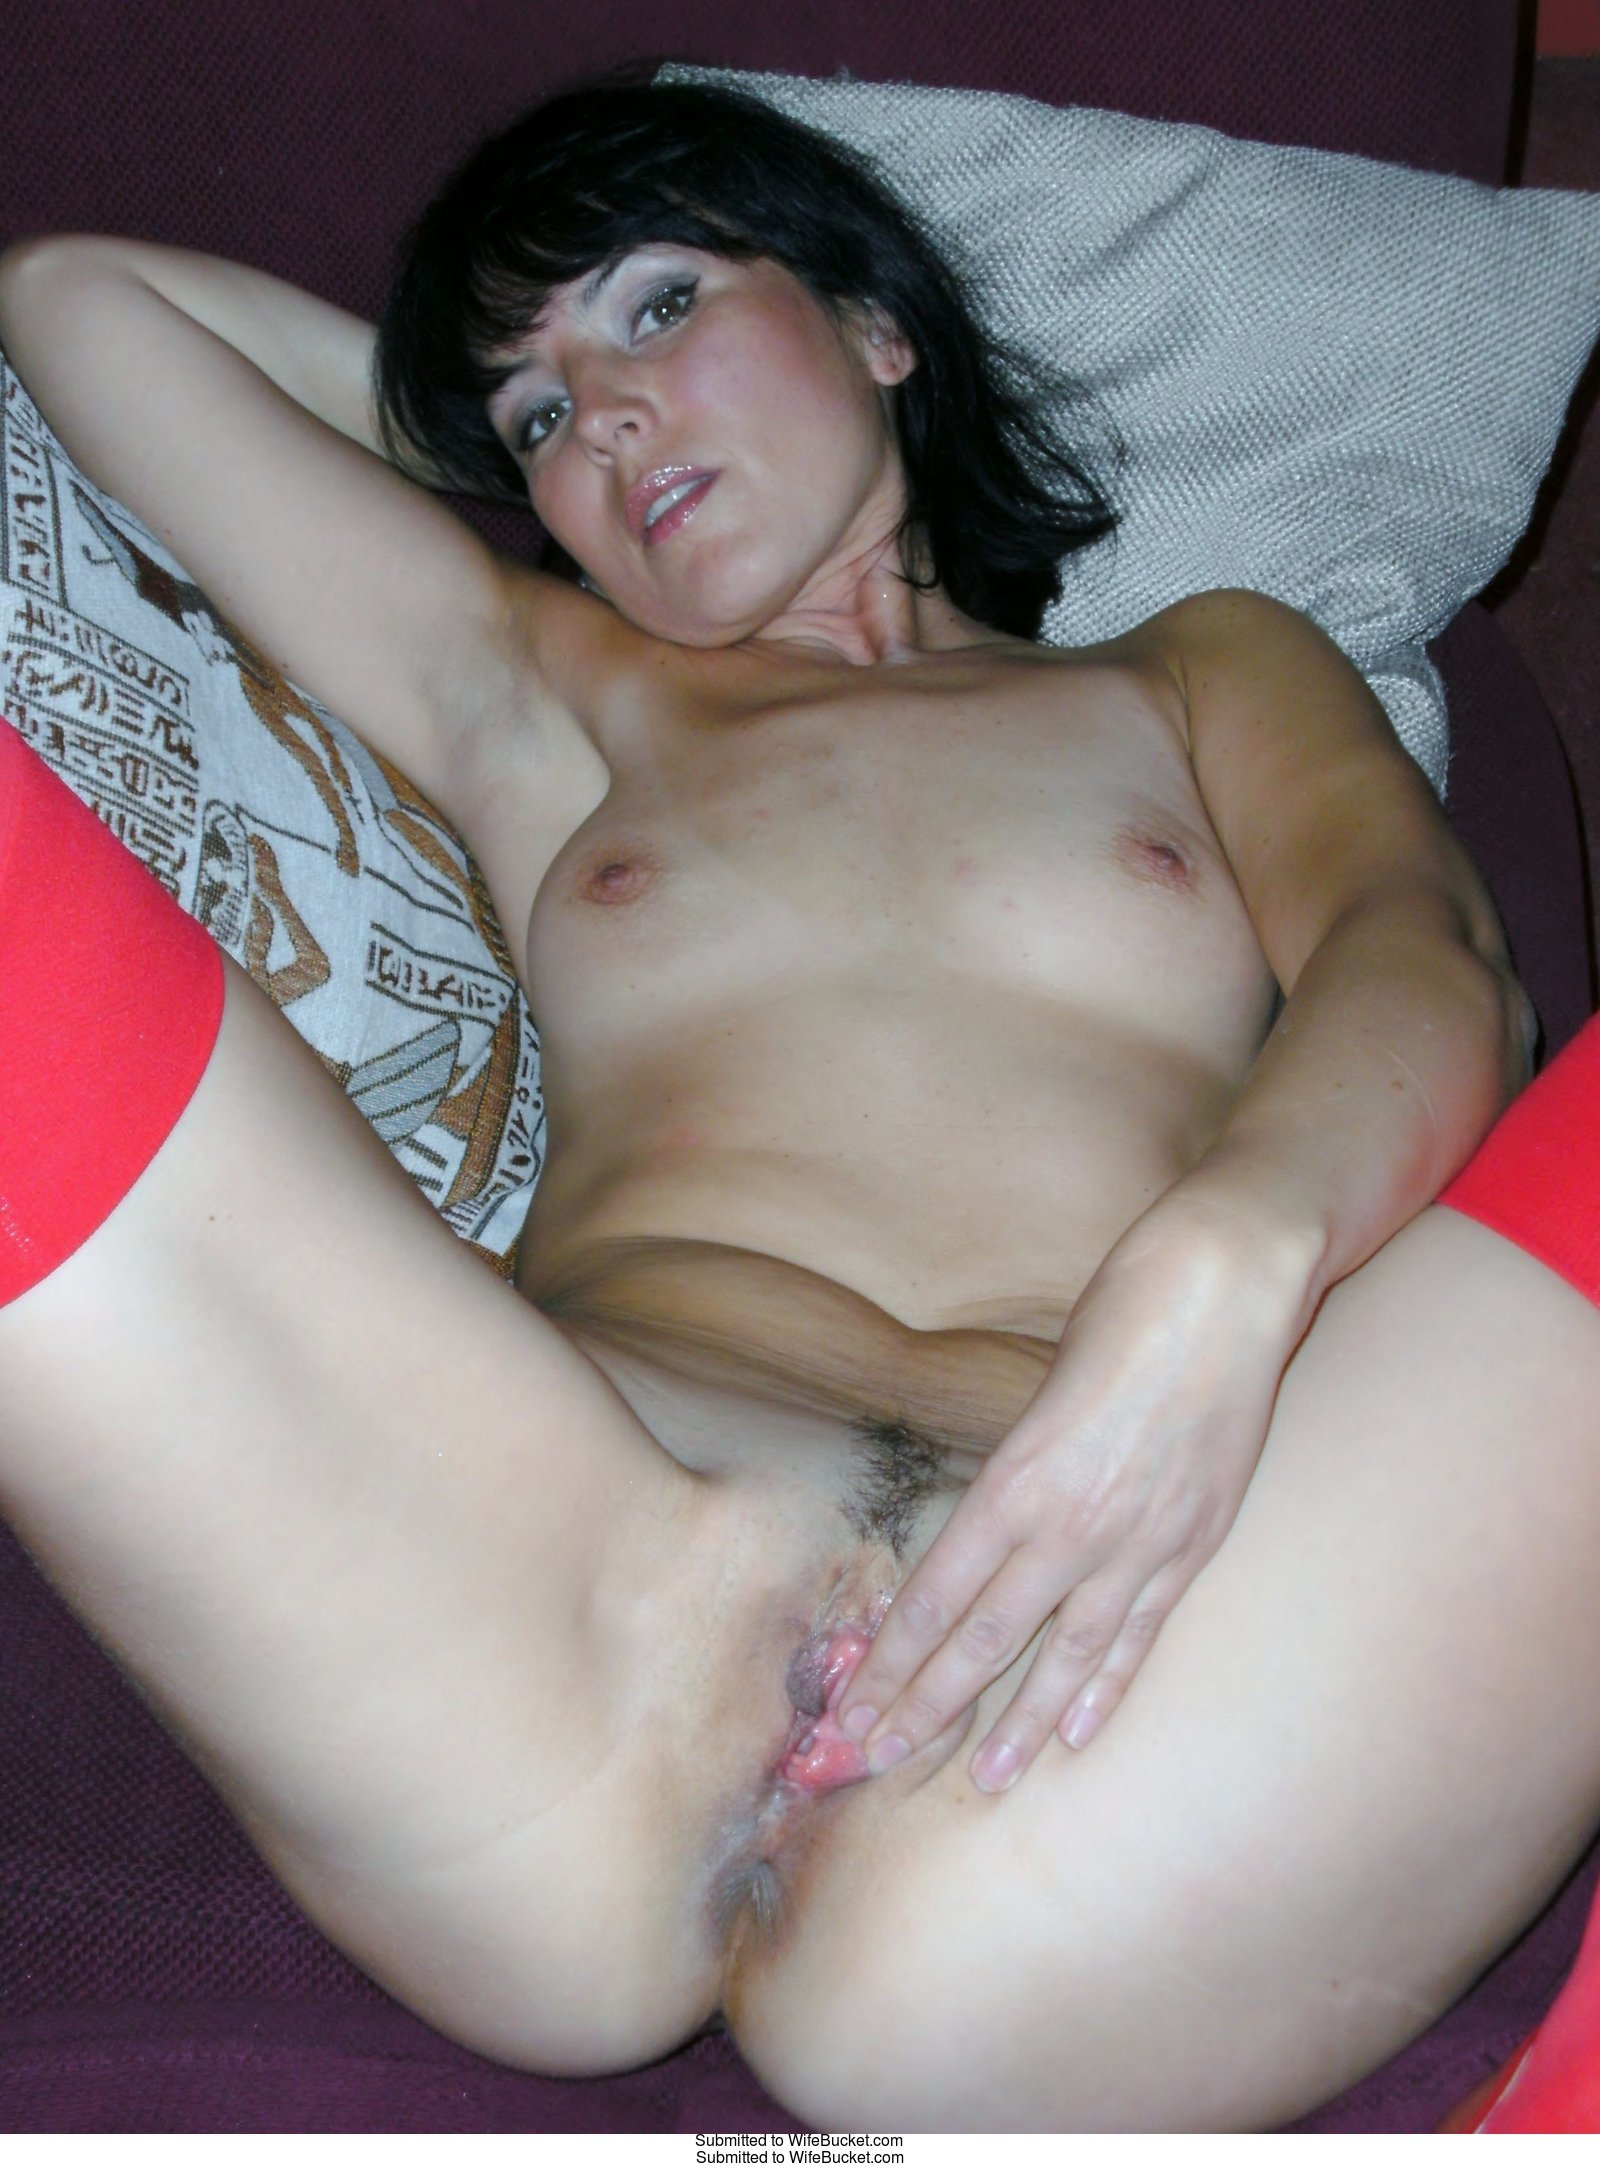 French Teen Nudes